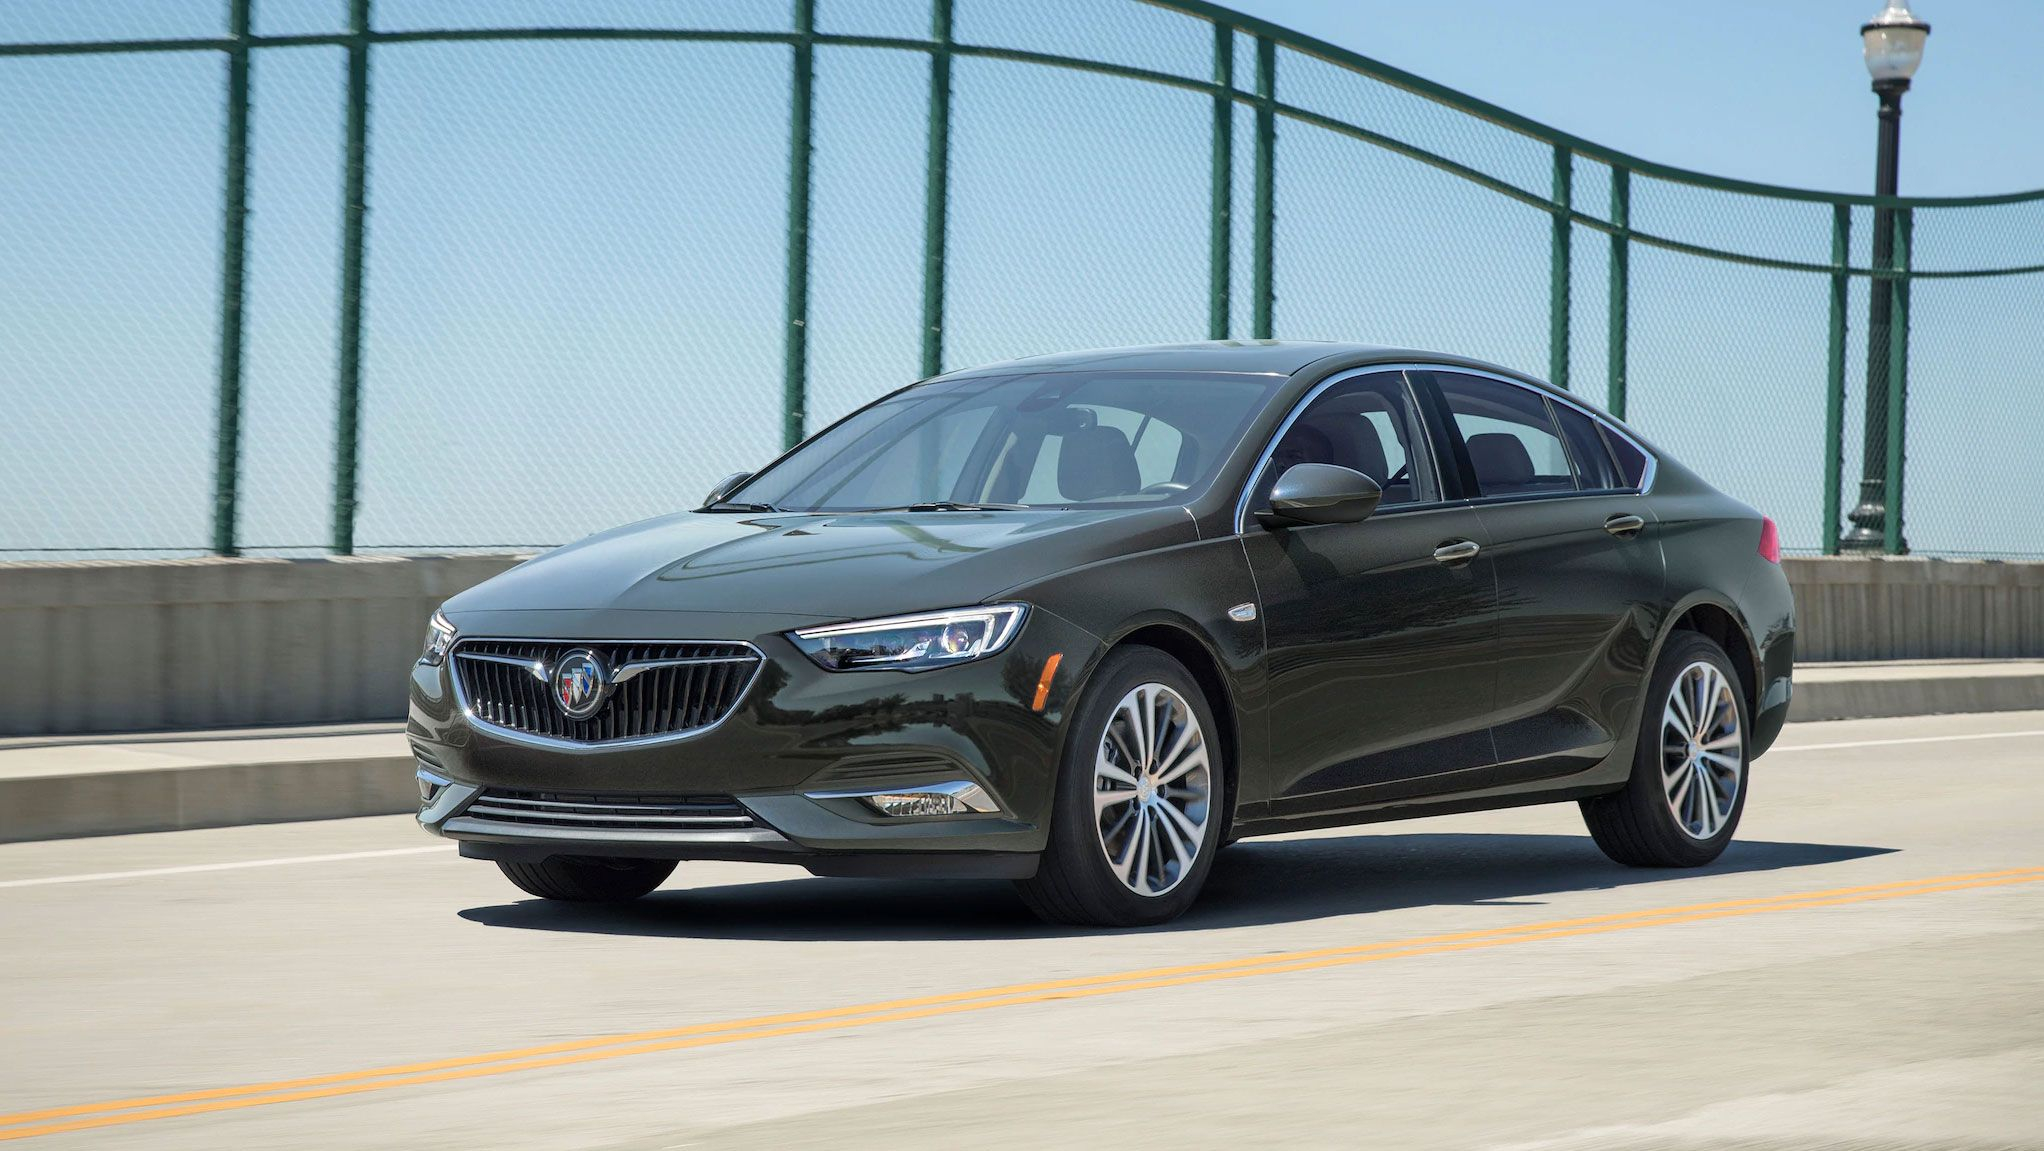 2020 Buick Regal Sportback Review, Pricing, And Specs New 2021 Buick Regal Specs, Price, 0-60